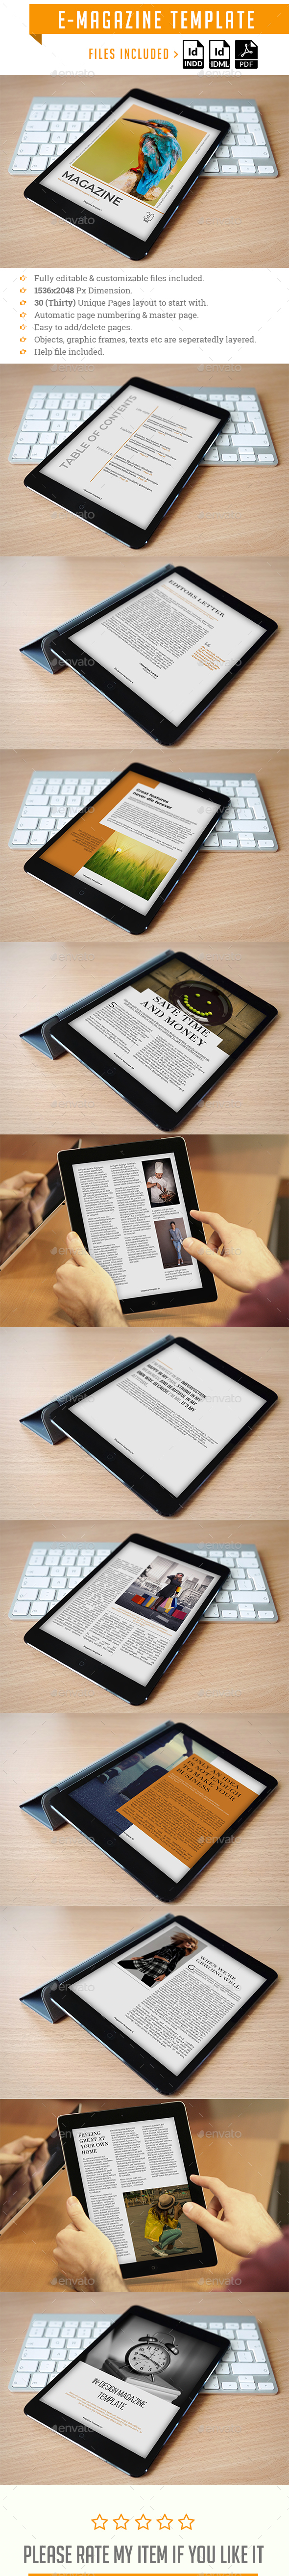 Multipurpose E-Magazine - Digital Magazines ePublishing